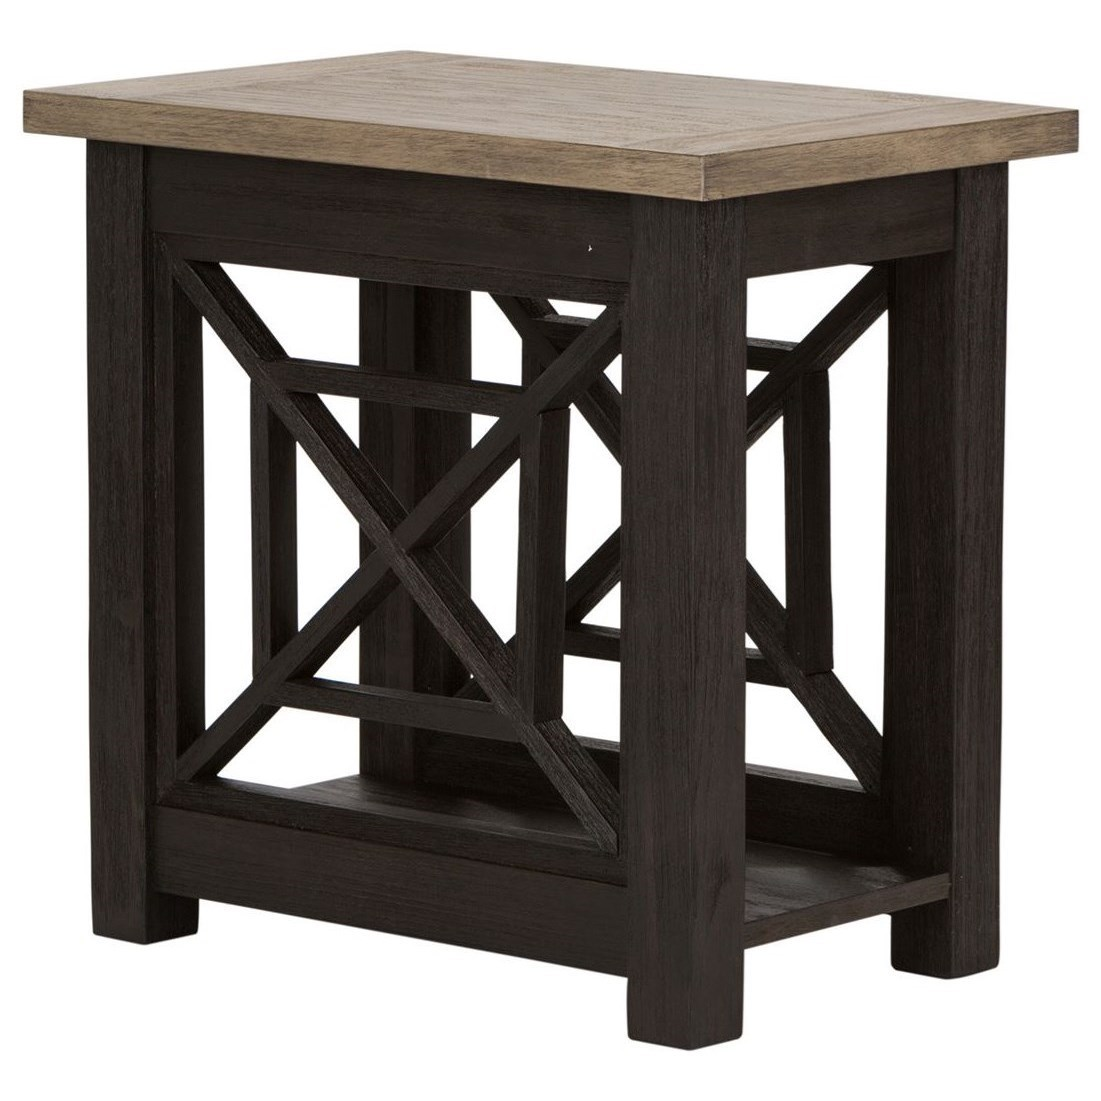 Transitional Chair Side Table with Bottom Shelf